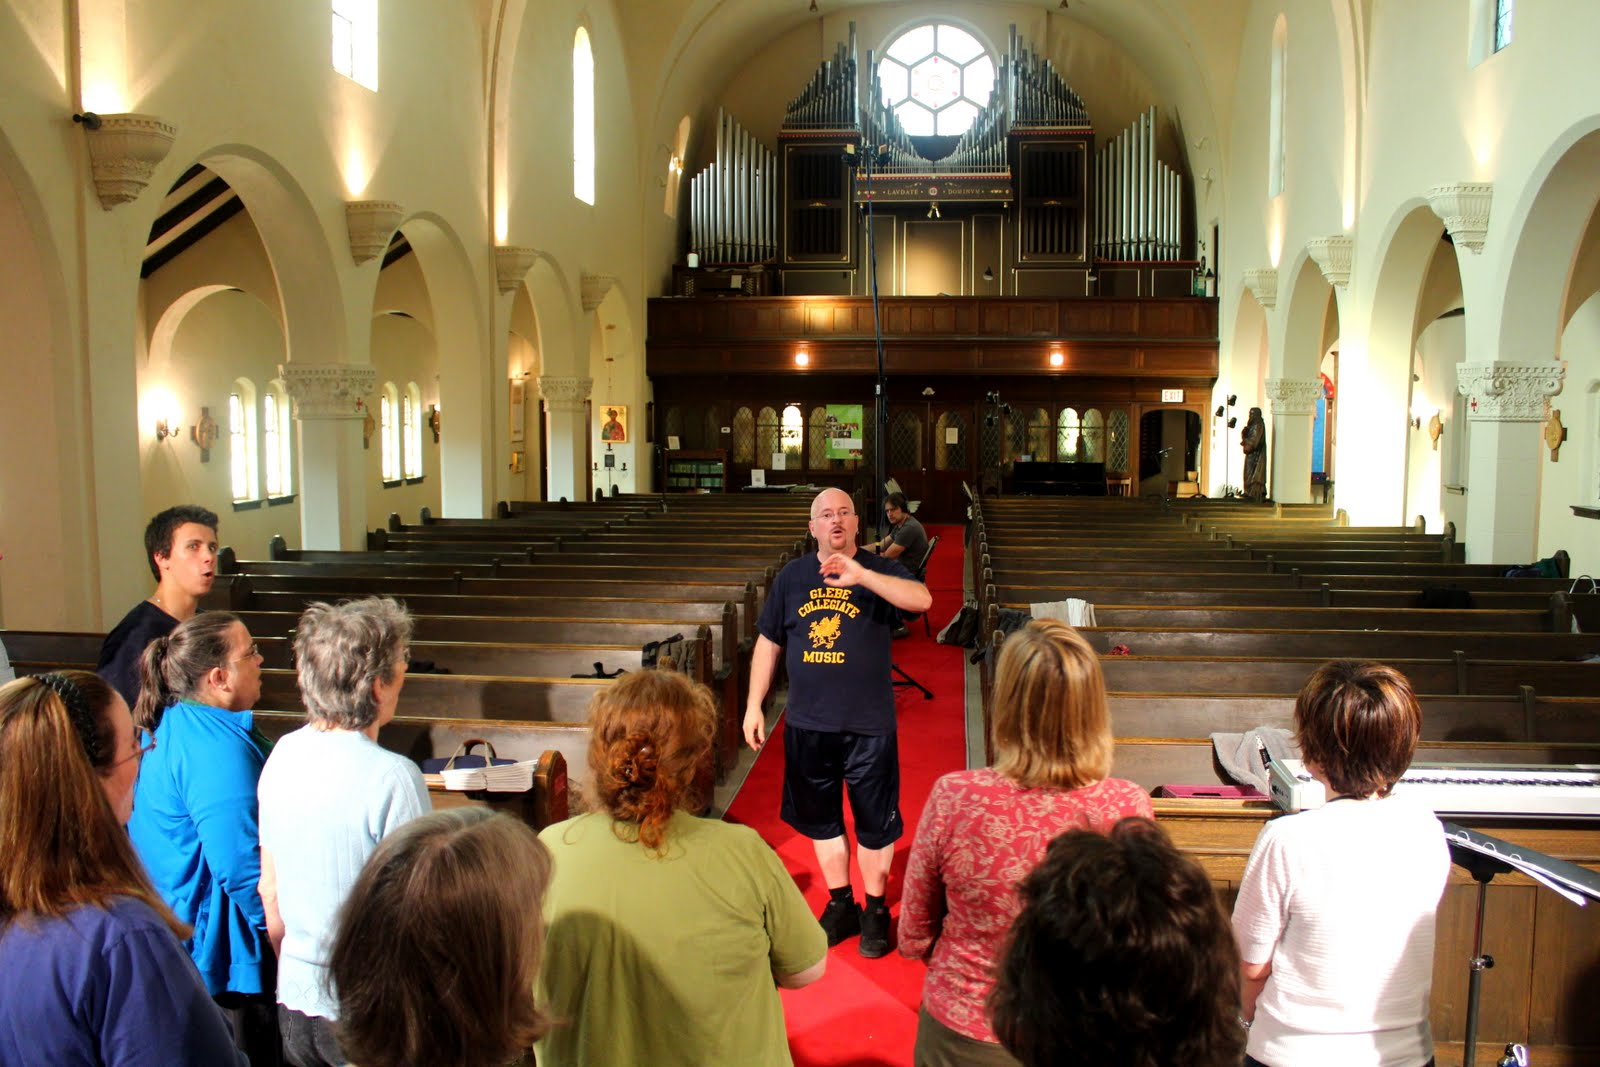 Pierre directs the choir at 2012 Cantate Domino recording session